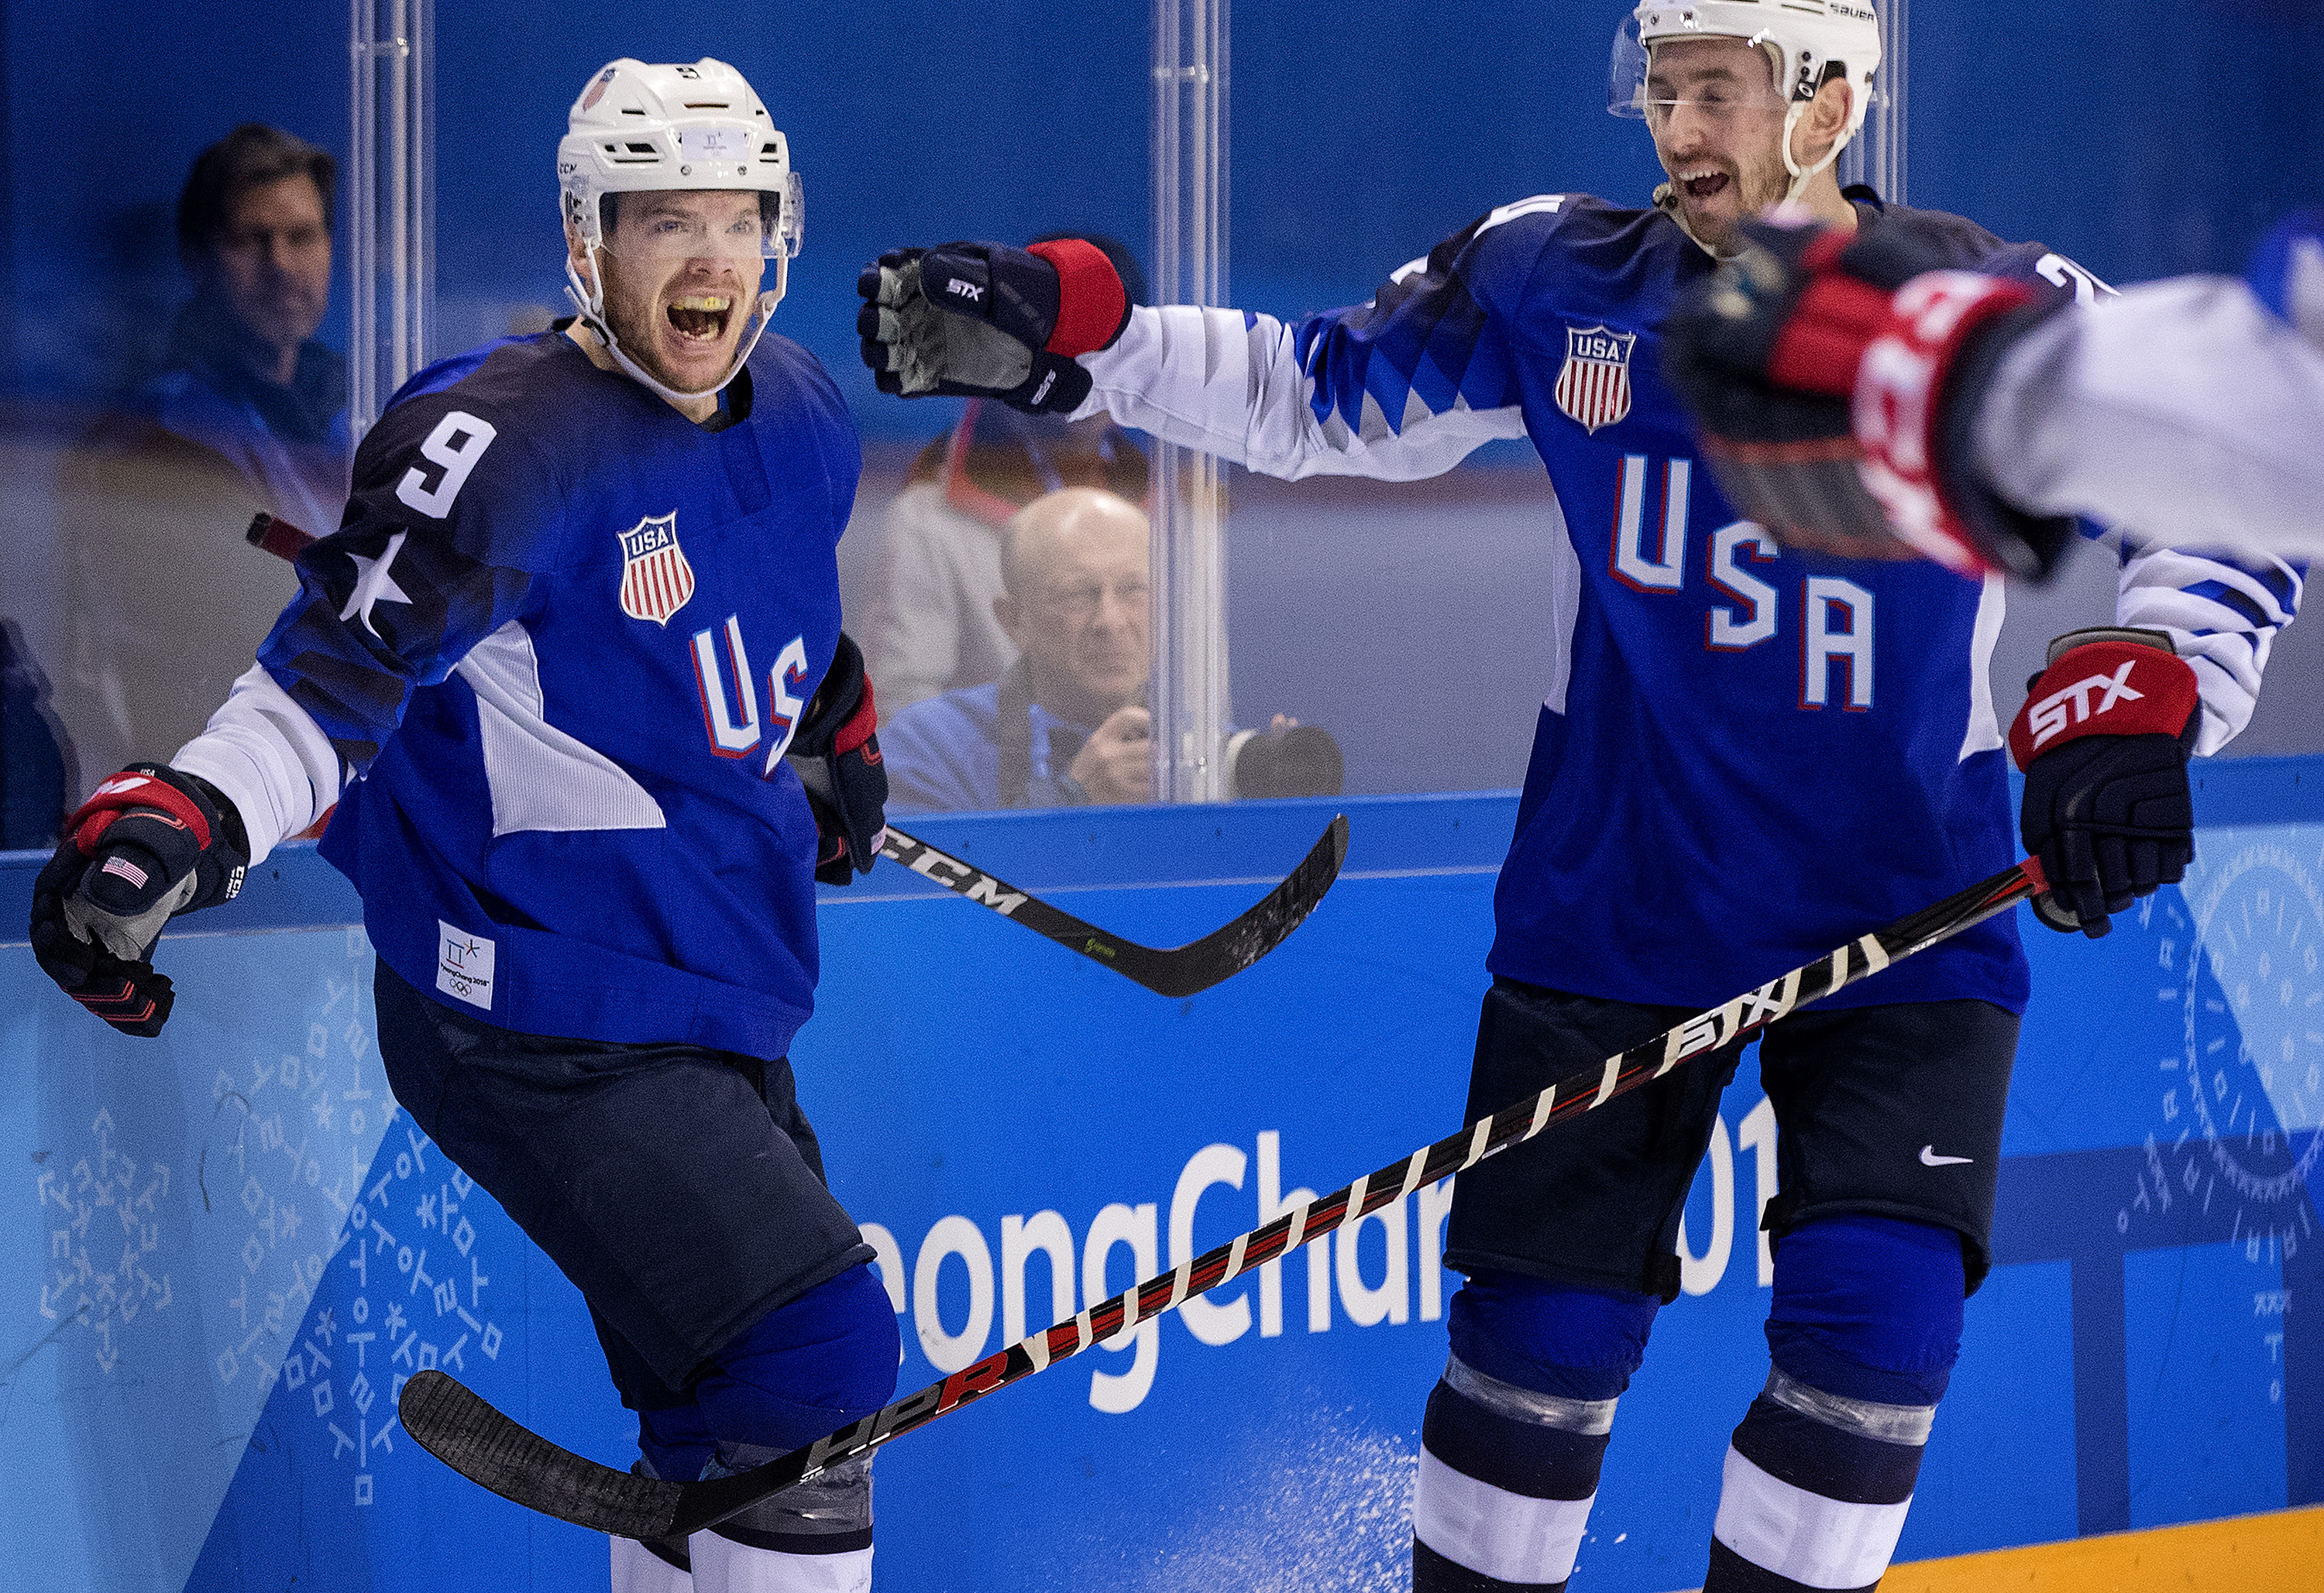 Yardley native Brian O Neill left) celebrated after scoring a goal in the first period, on February 14, 2018, at the Winter Olympics in South Korea, Pyeongchang